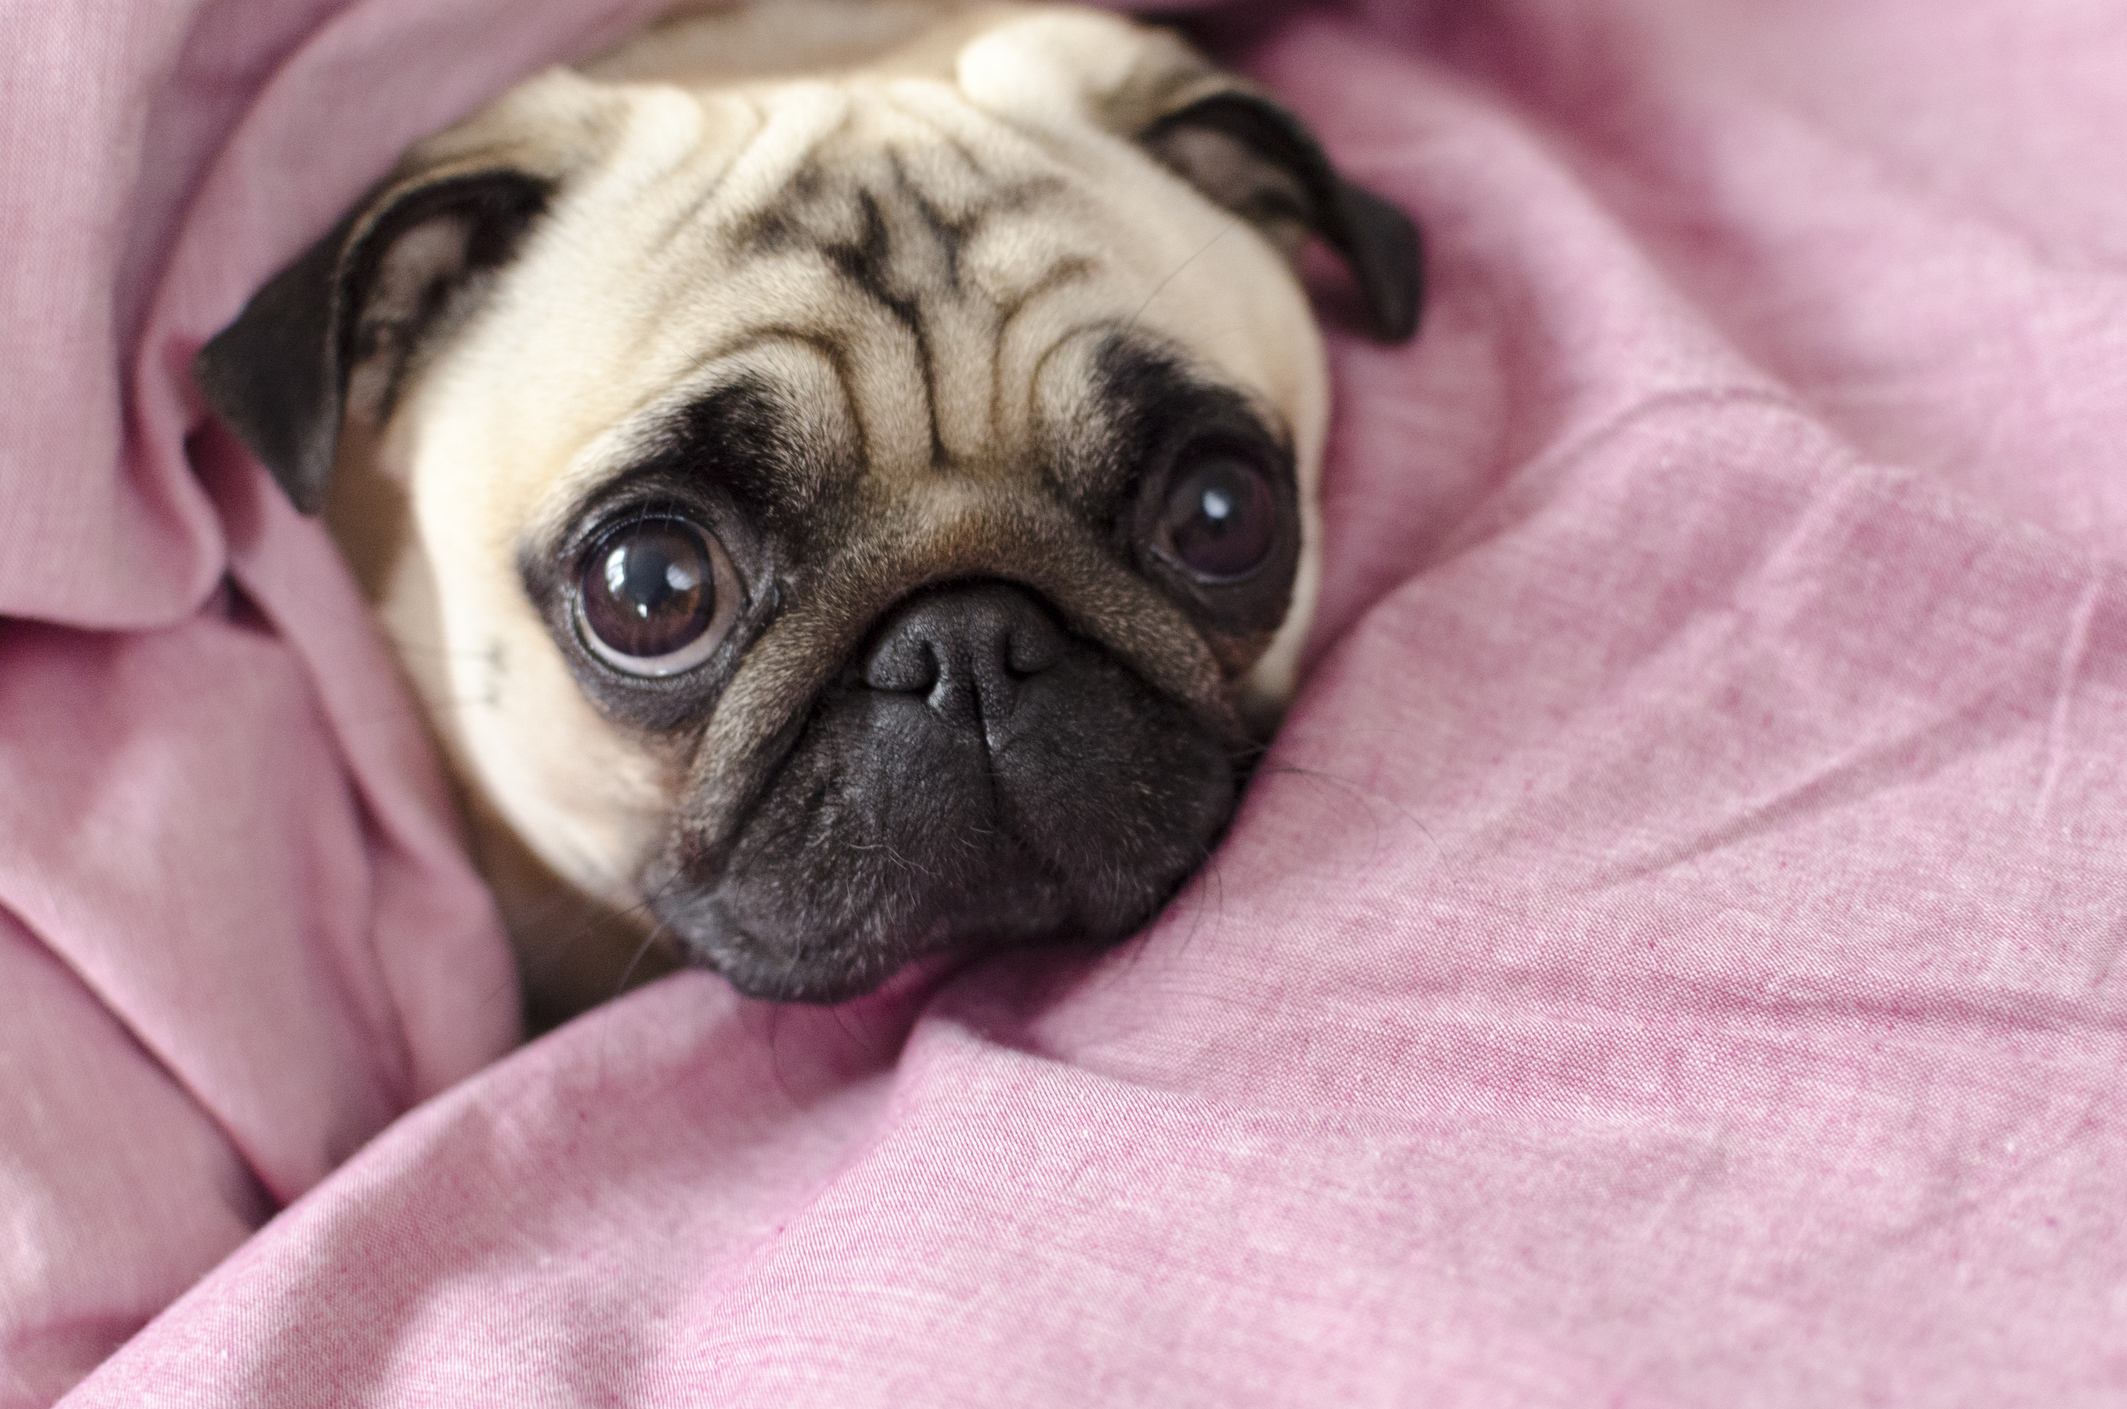 pug wrapped up in a pink sheet with its head poking out